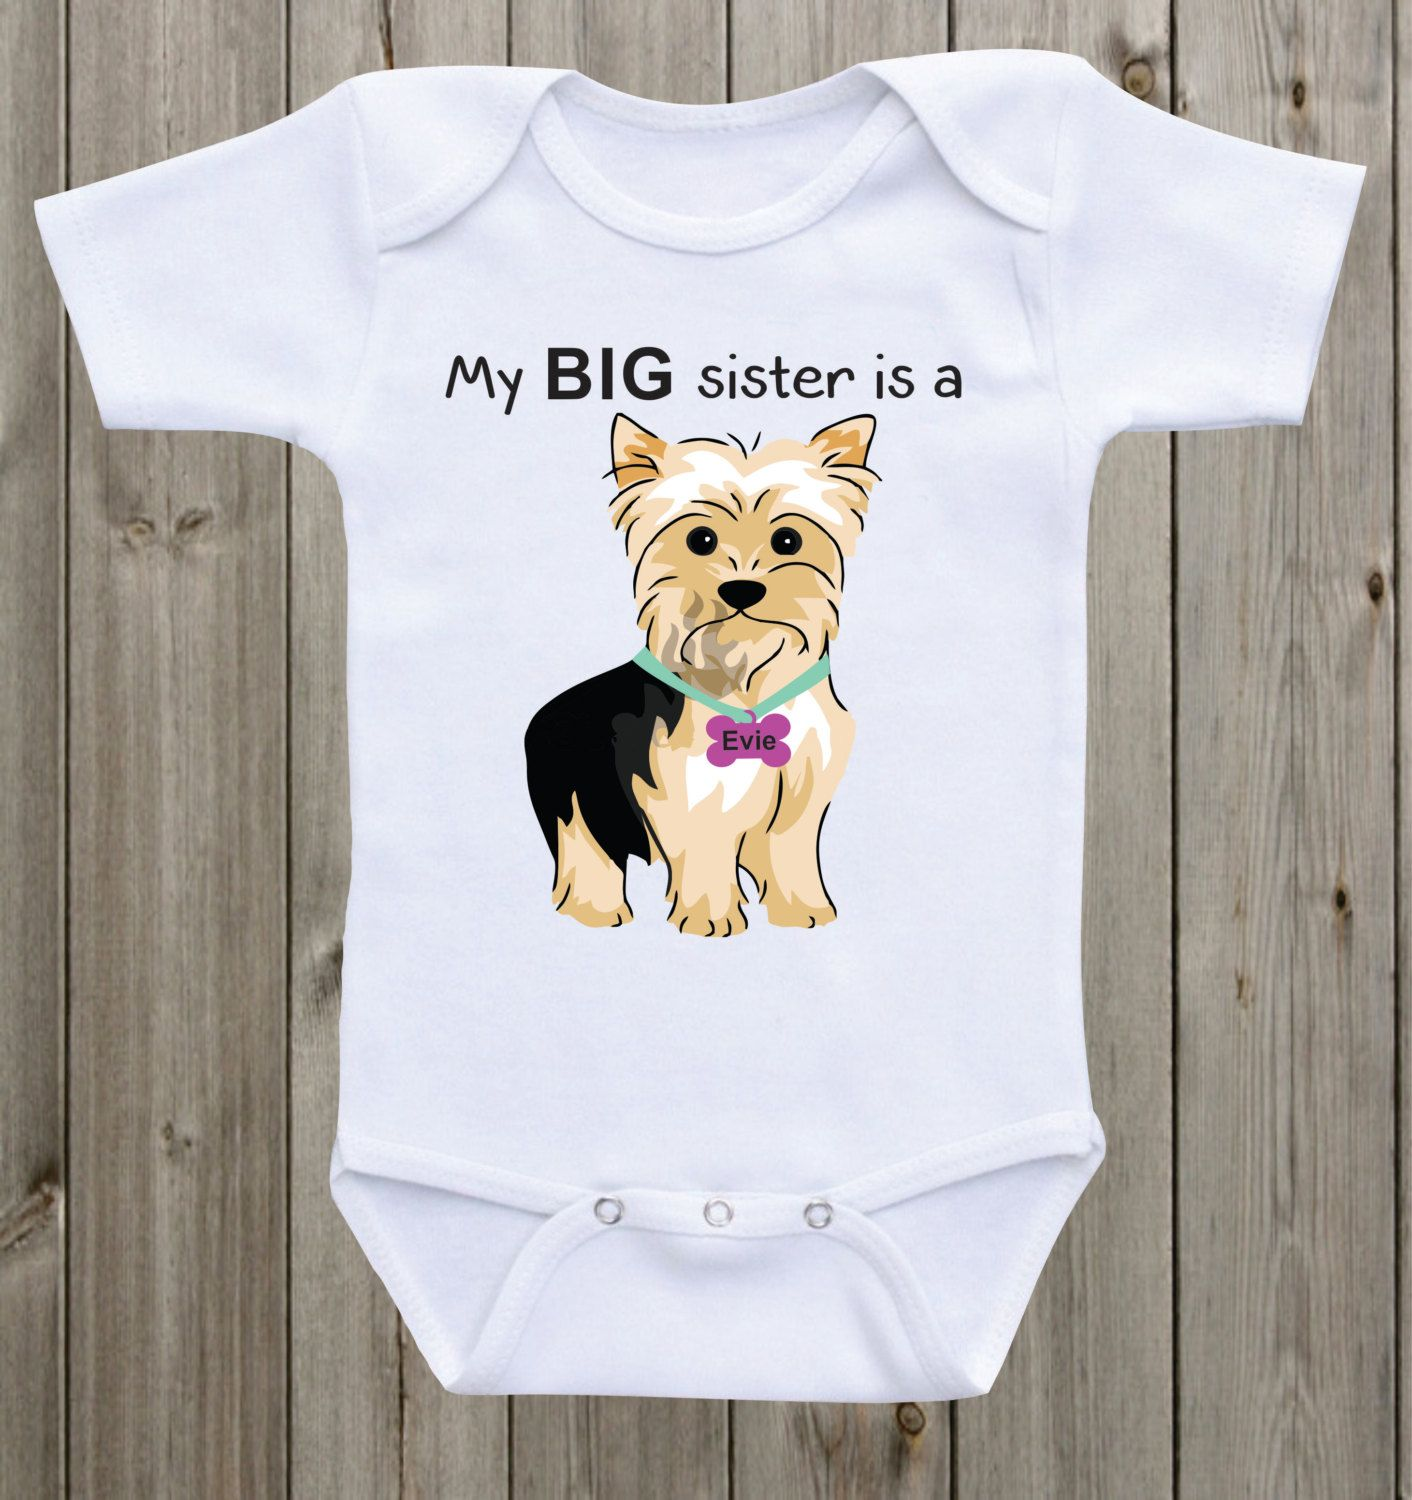 My Big sister is a Yorkie Dog esie Dog lover baby onesie Sibling